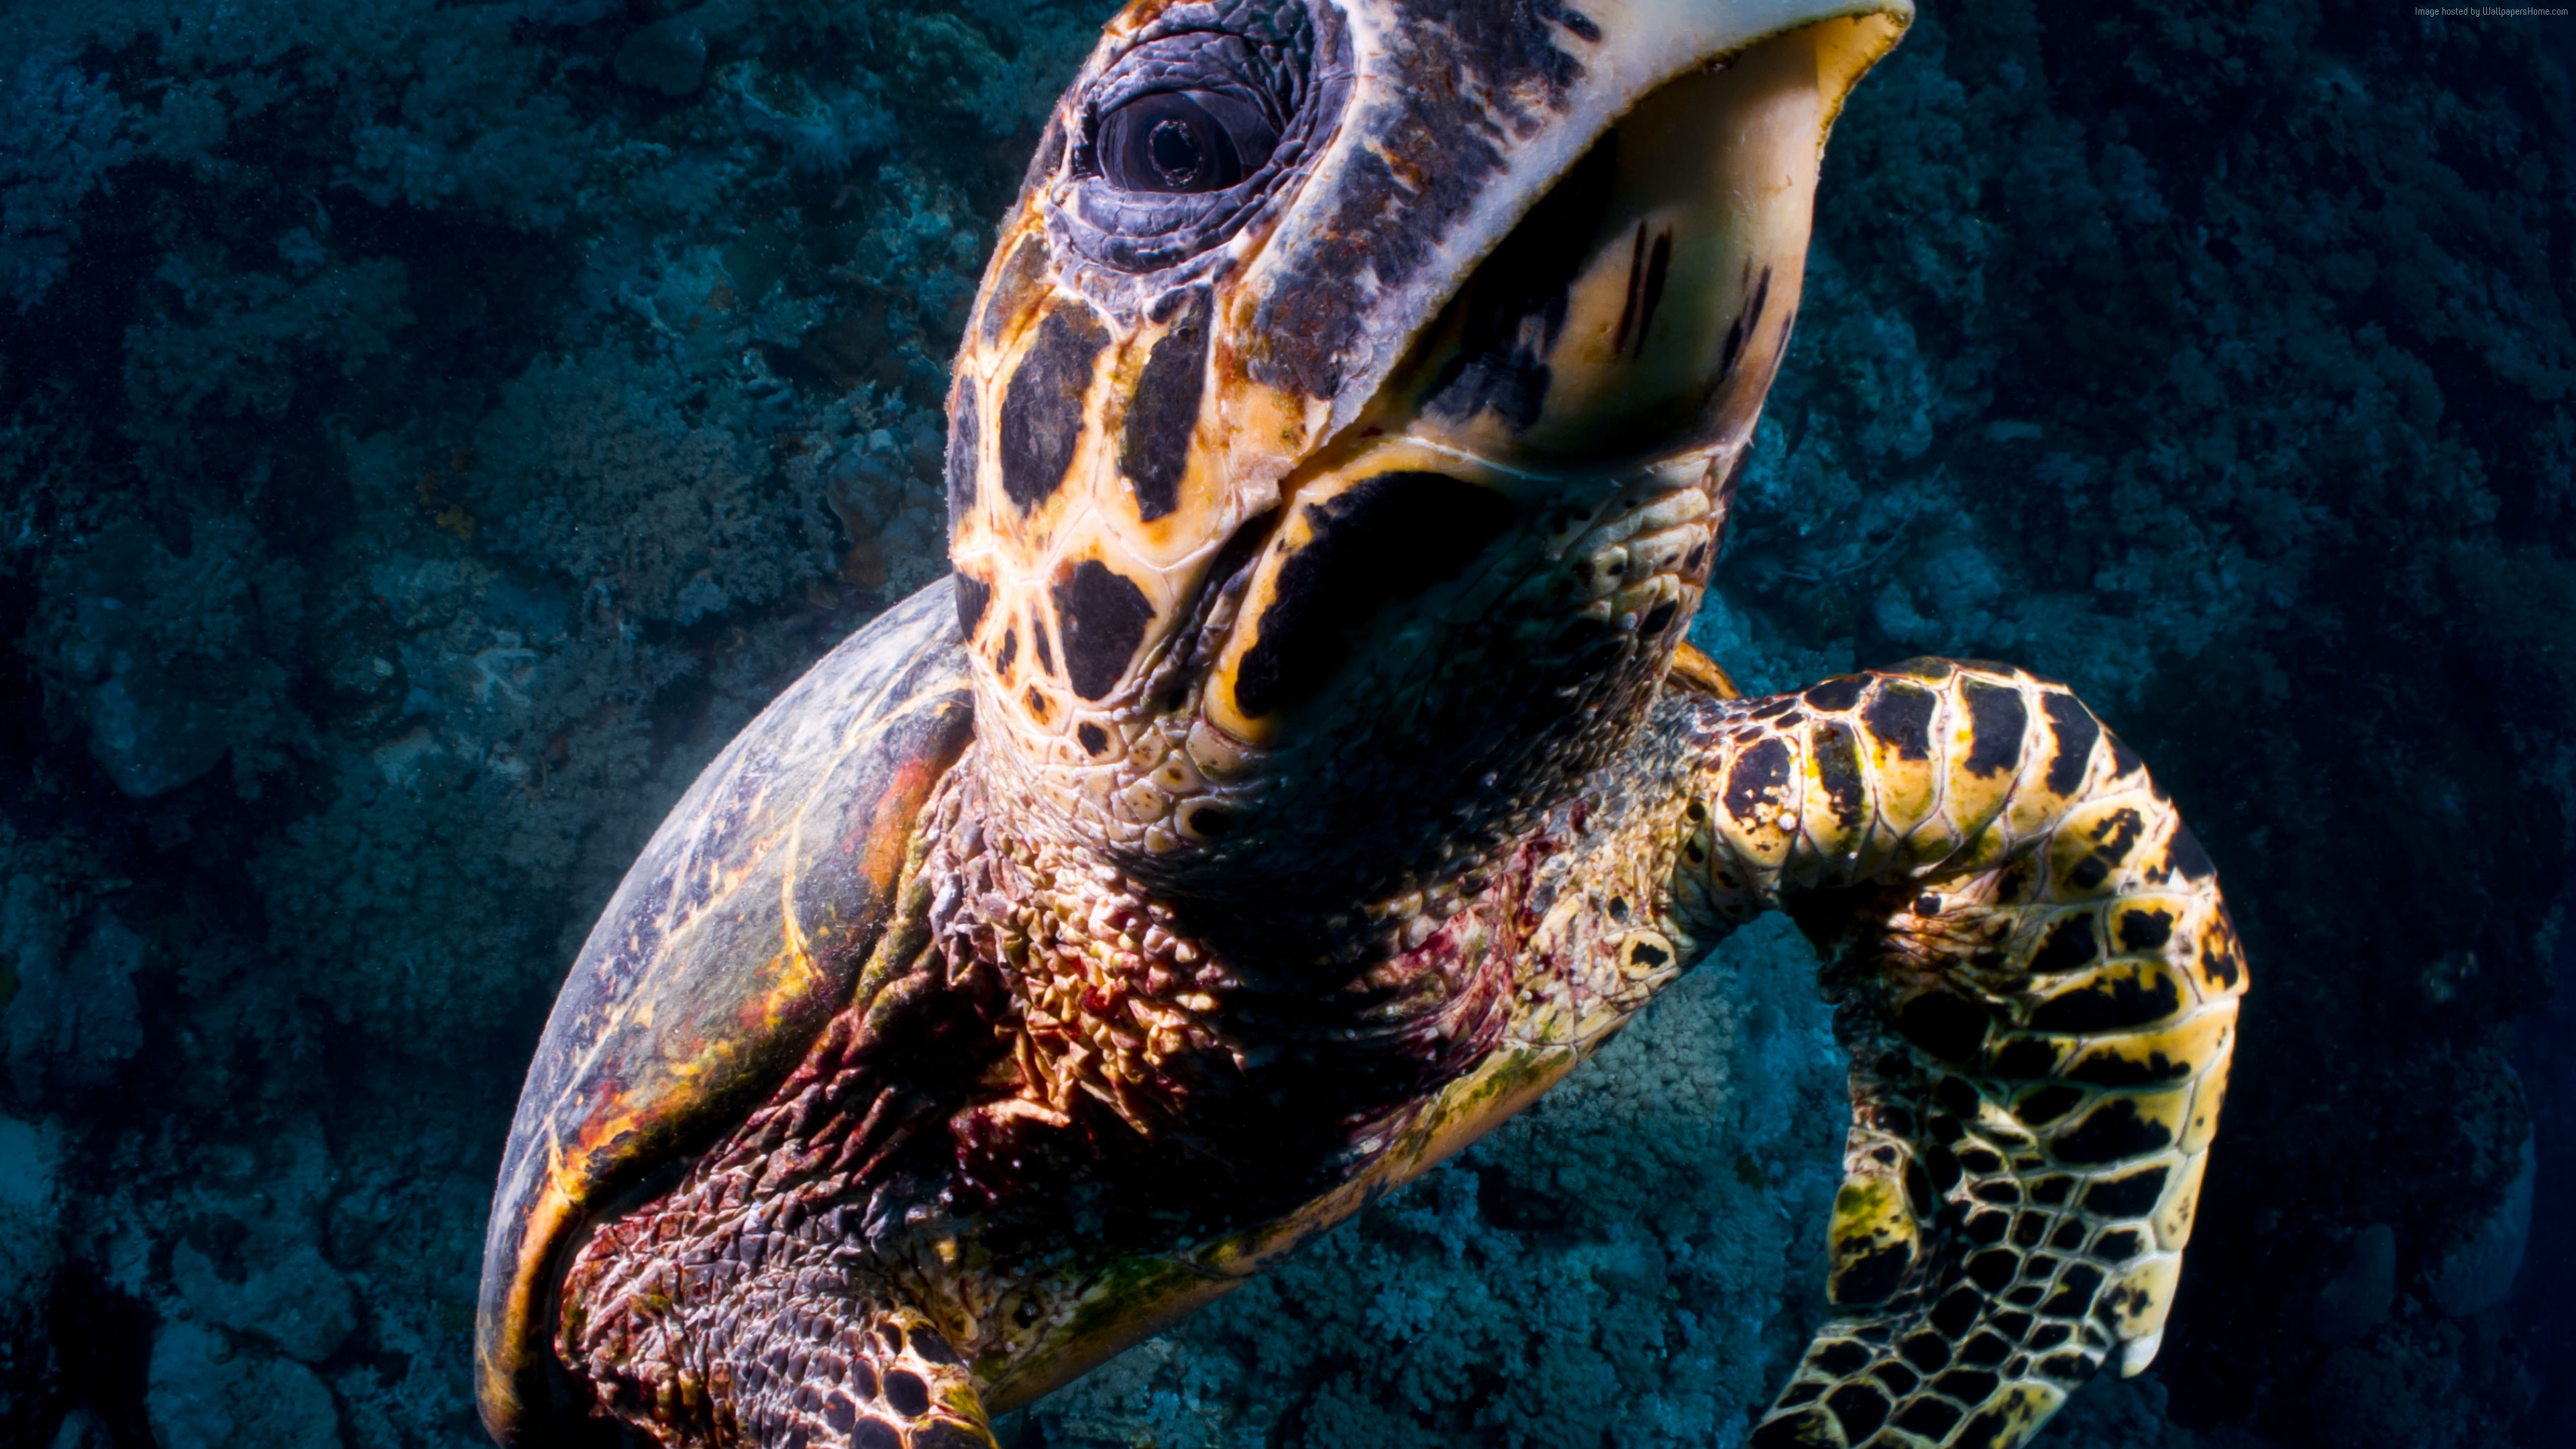 Wallpaper Turtle, Bloody Bay Wall, Little Cayman, Caribbean, , diving, tourism, sea, ocean, water, underwater, gopro, bottom, blue, Animals